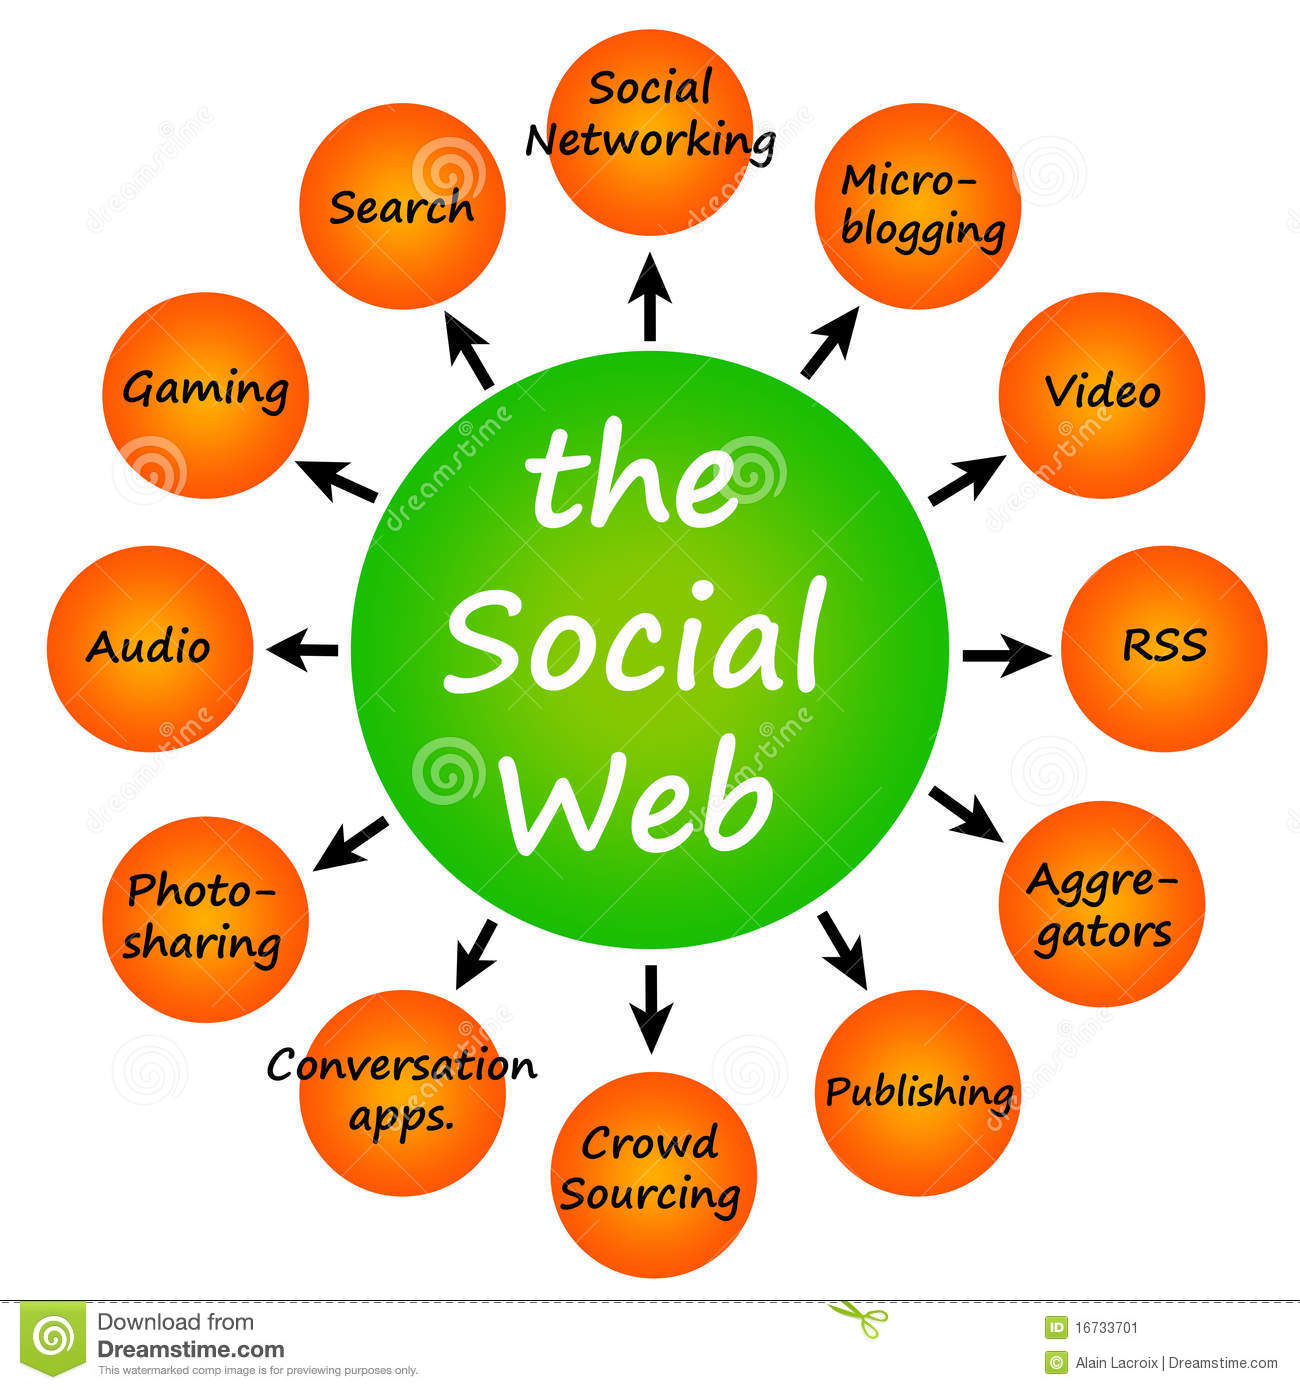 social web Here's our list of the most popular social media sites being explored by the world today learn about some amazing social sites that you can start on today.